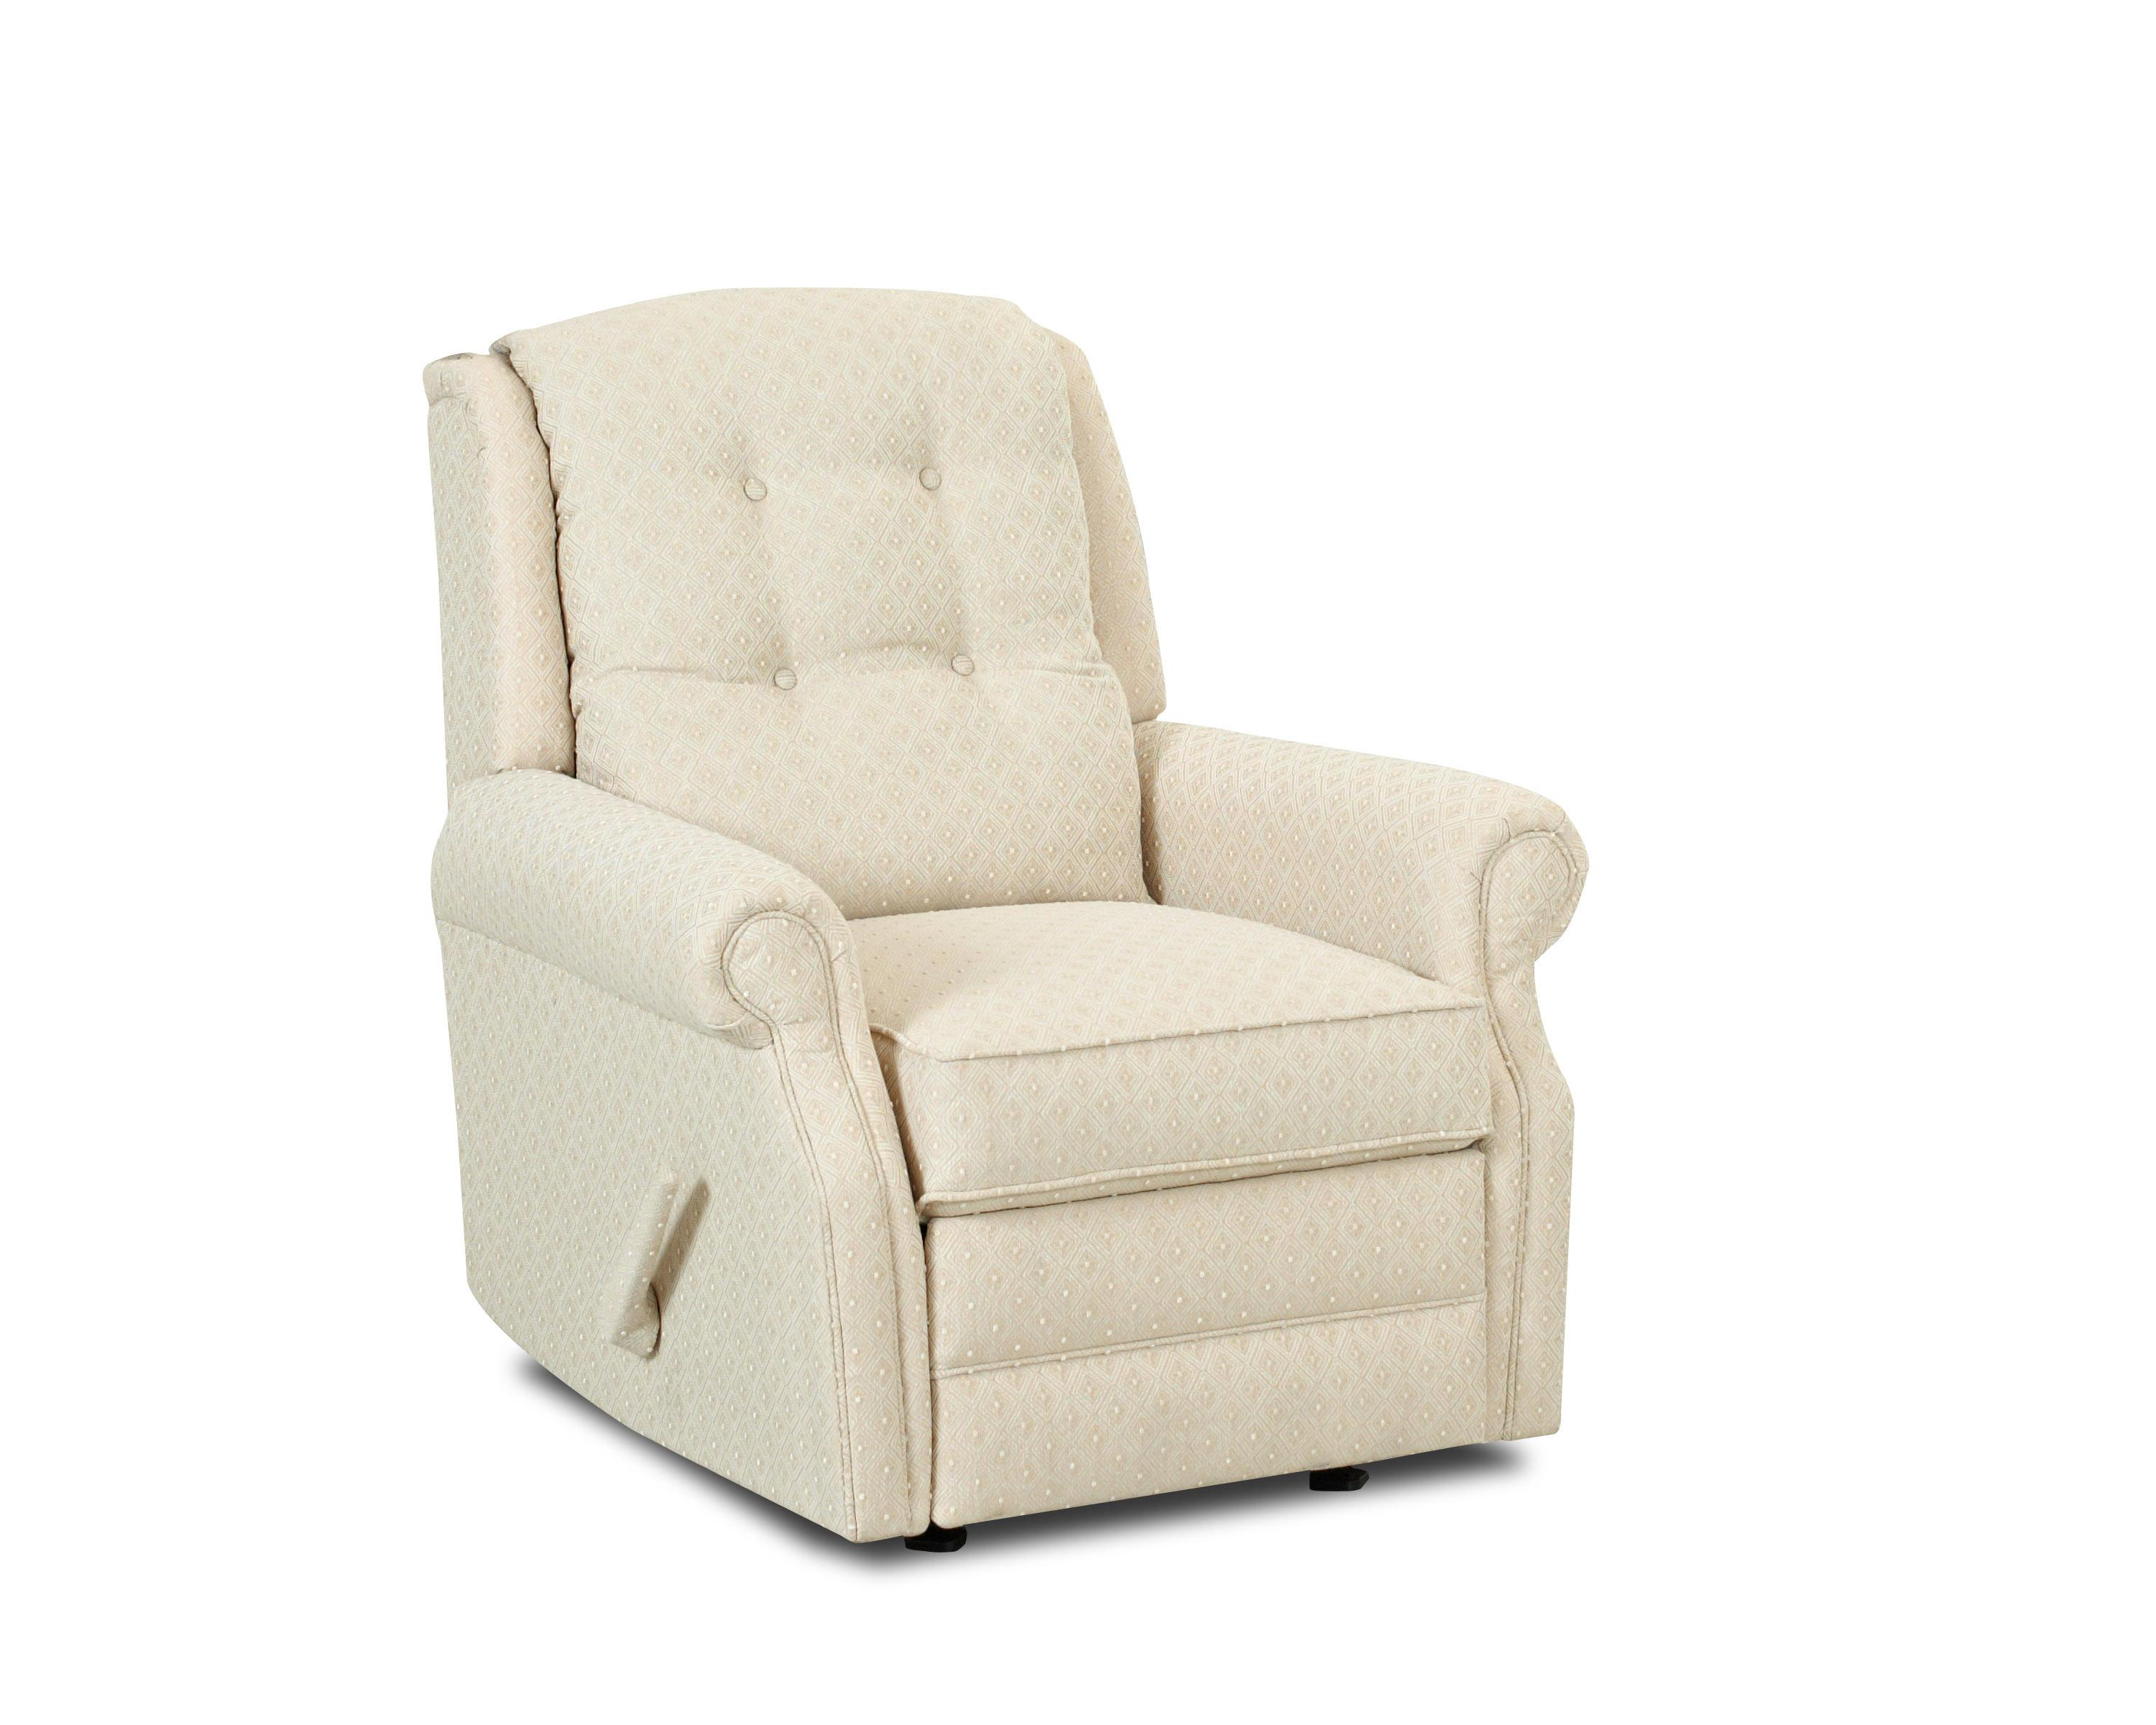 Superieur Manual Swivel Rocking Reclining Chair